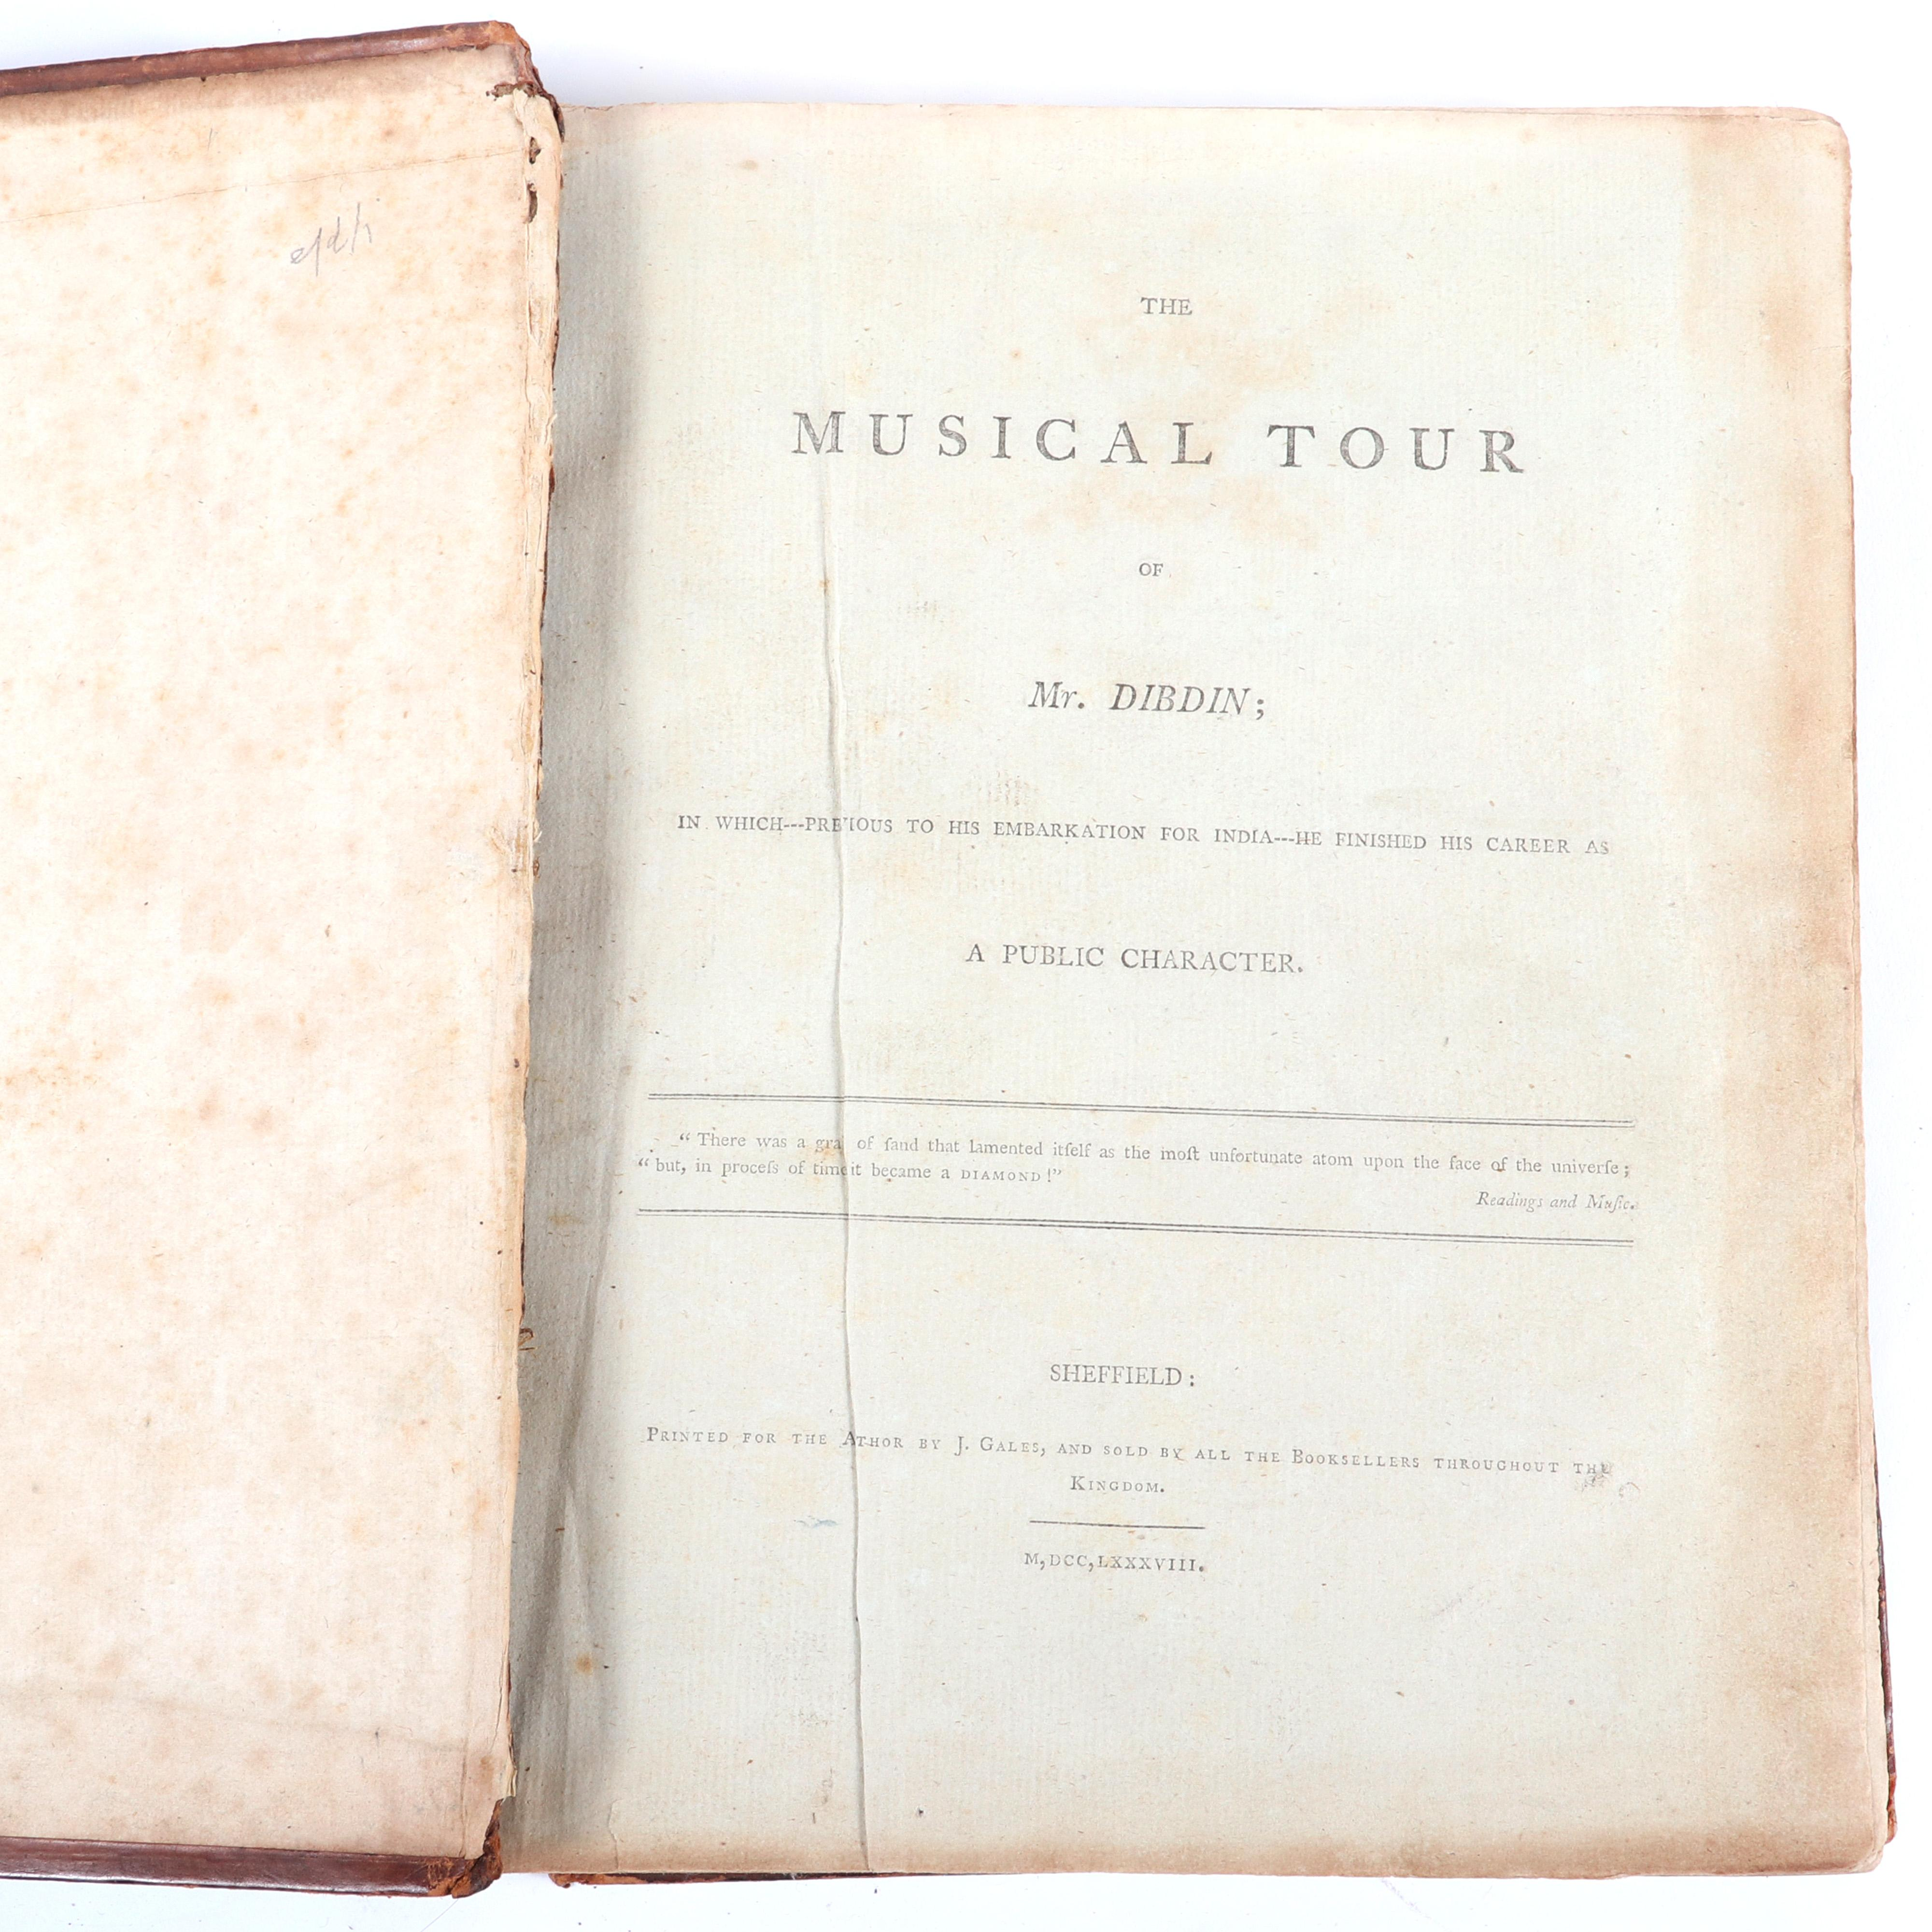 "The Musical Tour of Mr. Dibdin: In which- previous to his embarkation for India- he finished his career as a Public Character, Printed for the Author J. Gales, 1788. 2""H x 8 1/4""W x 10 3/8""D"